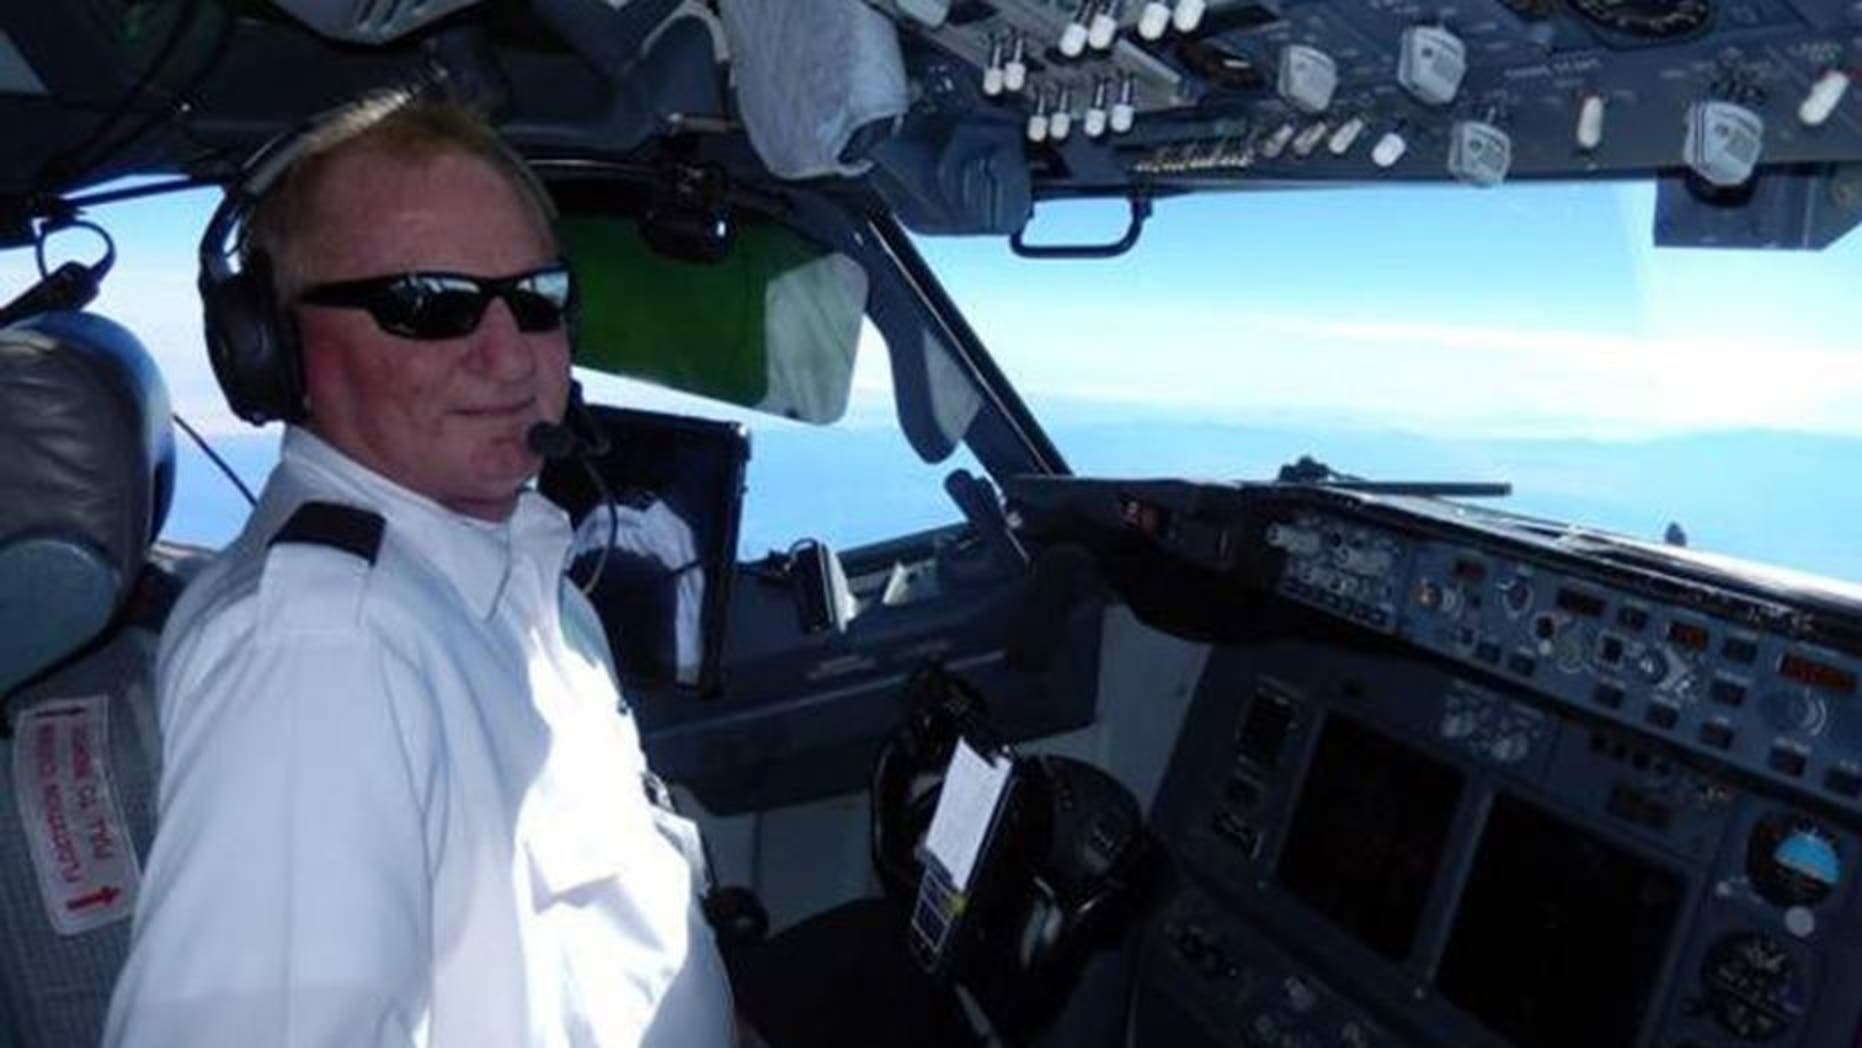 A former Alaska Airlines captain faces jail time for piloting a plane carrying passengers while under the influence of alcohol, over four years after the incident took place.